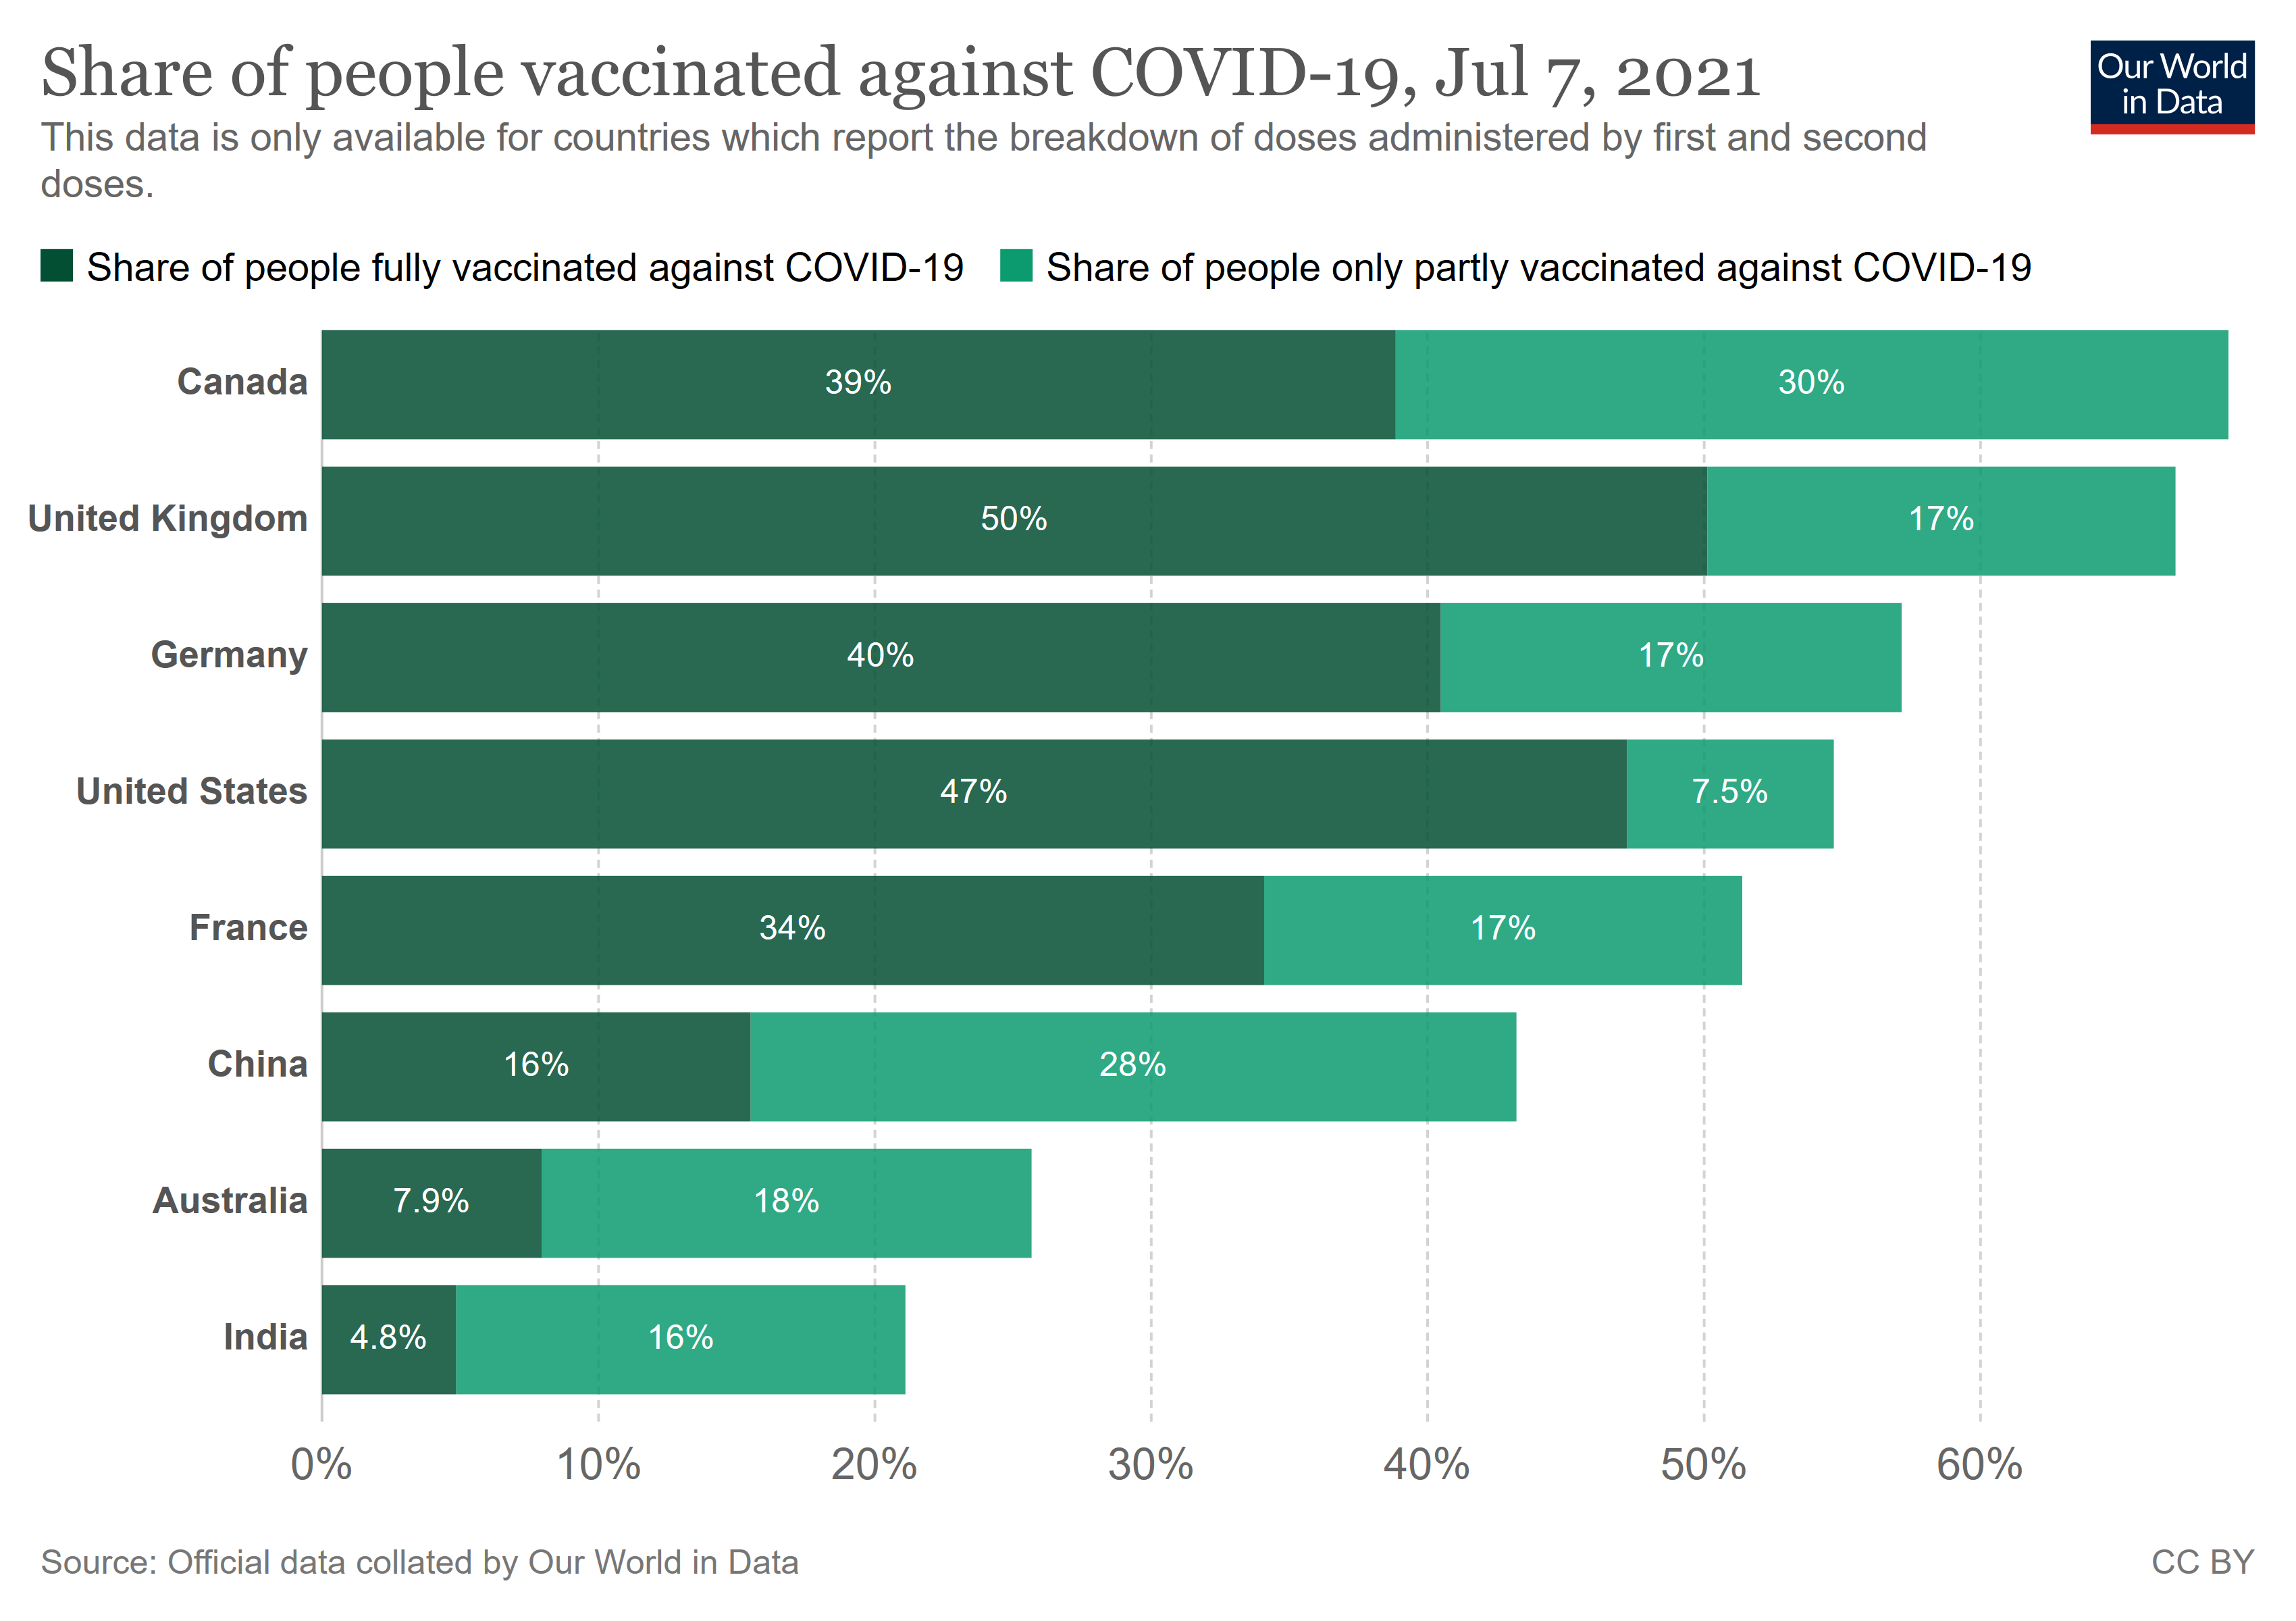 Share of people vaccinated against COVID-19